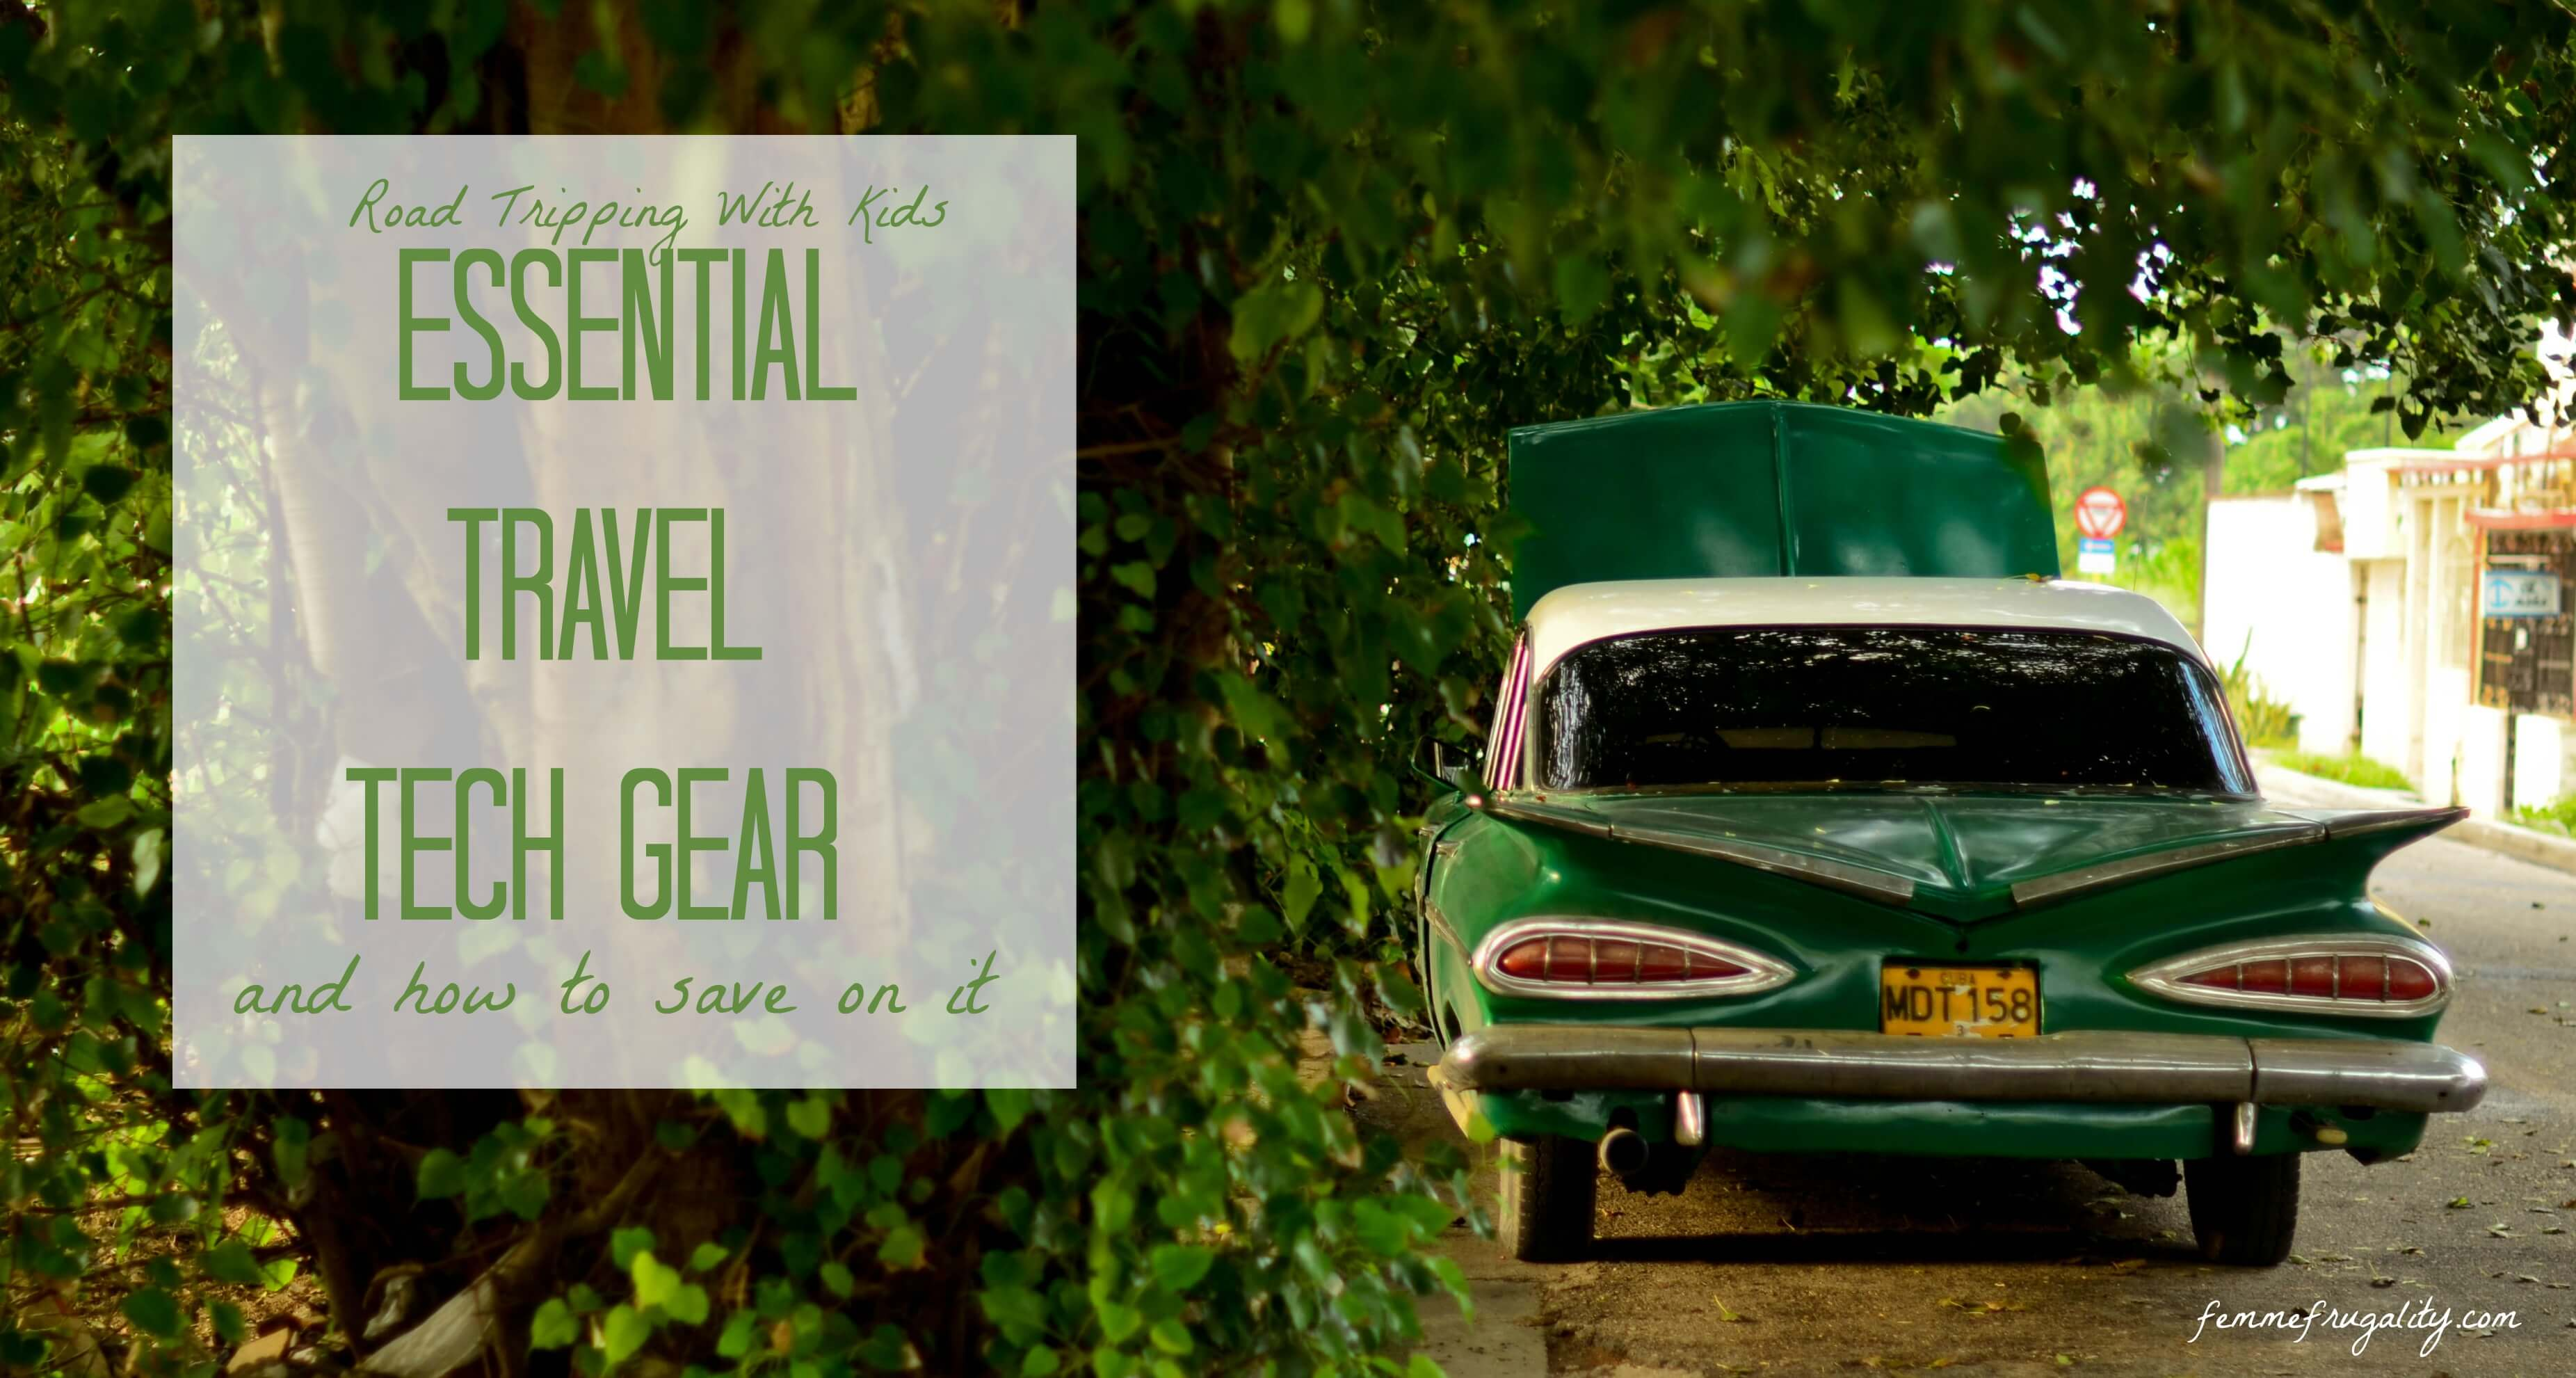 Our family's essential gadgets for road trips, along with tips on how to get them without going broke.